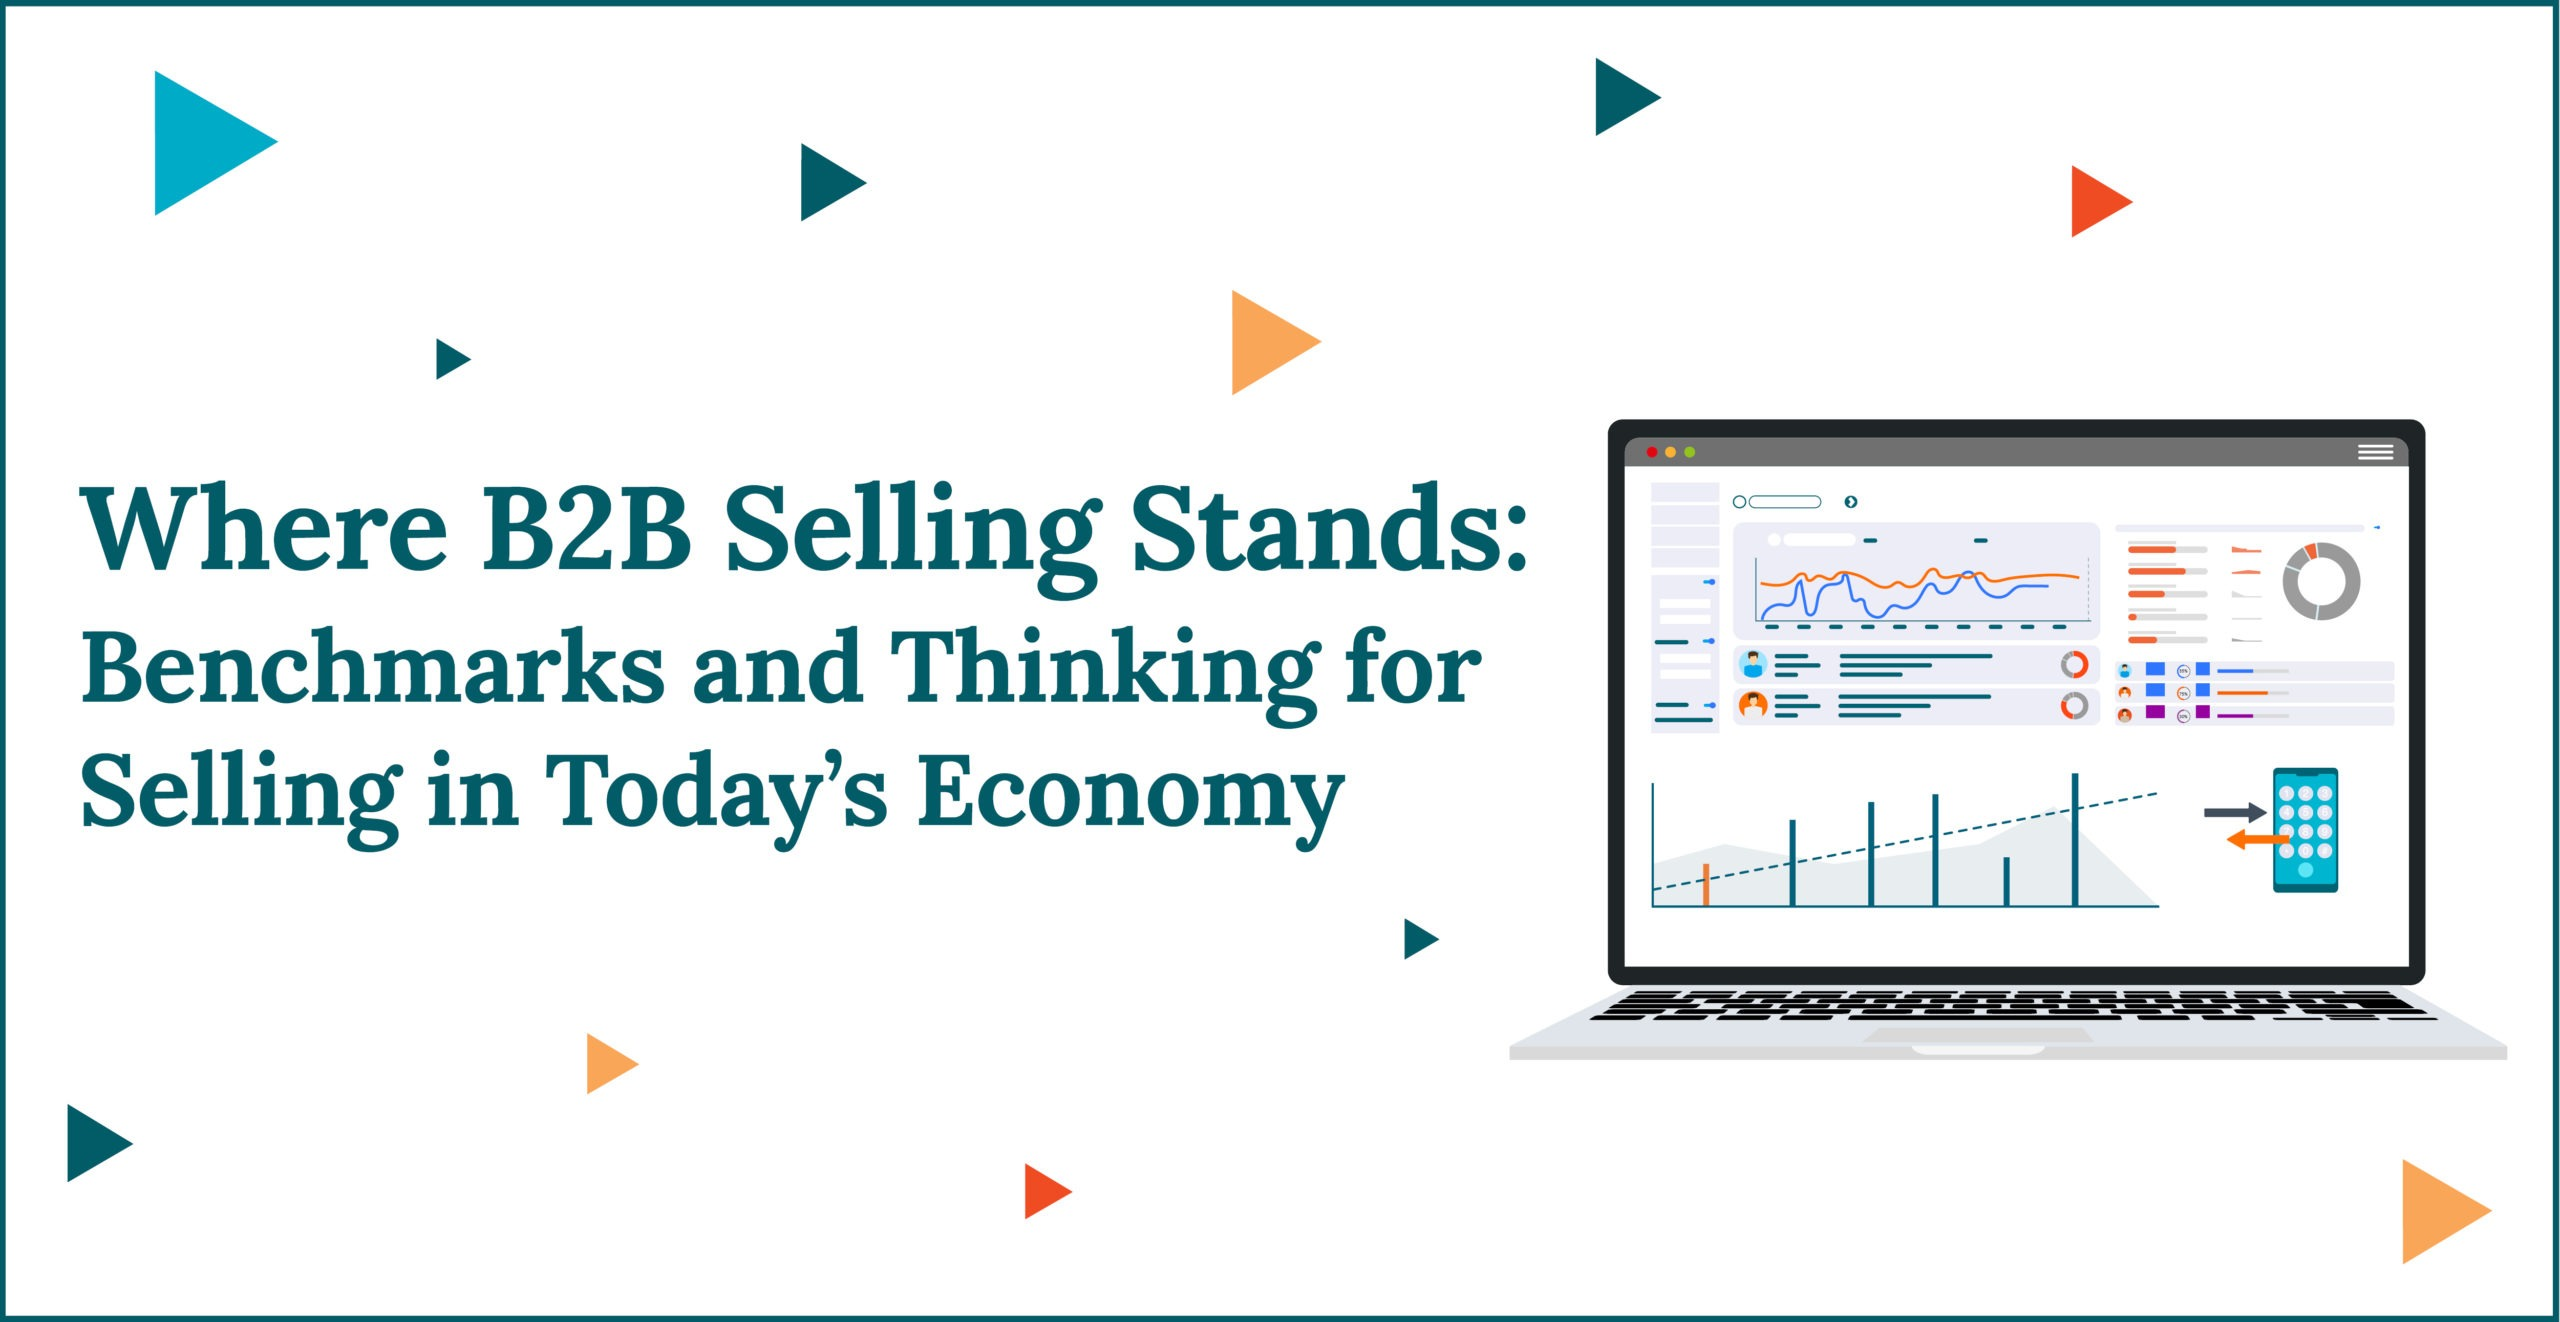 Where B2B Selling Stands: Benchmarks and Thinking for Selling in Today's Economy